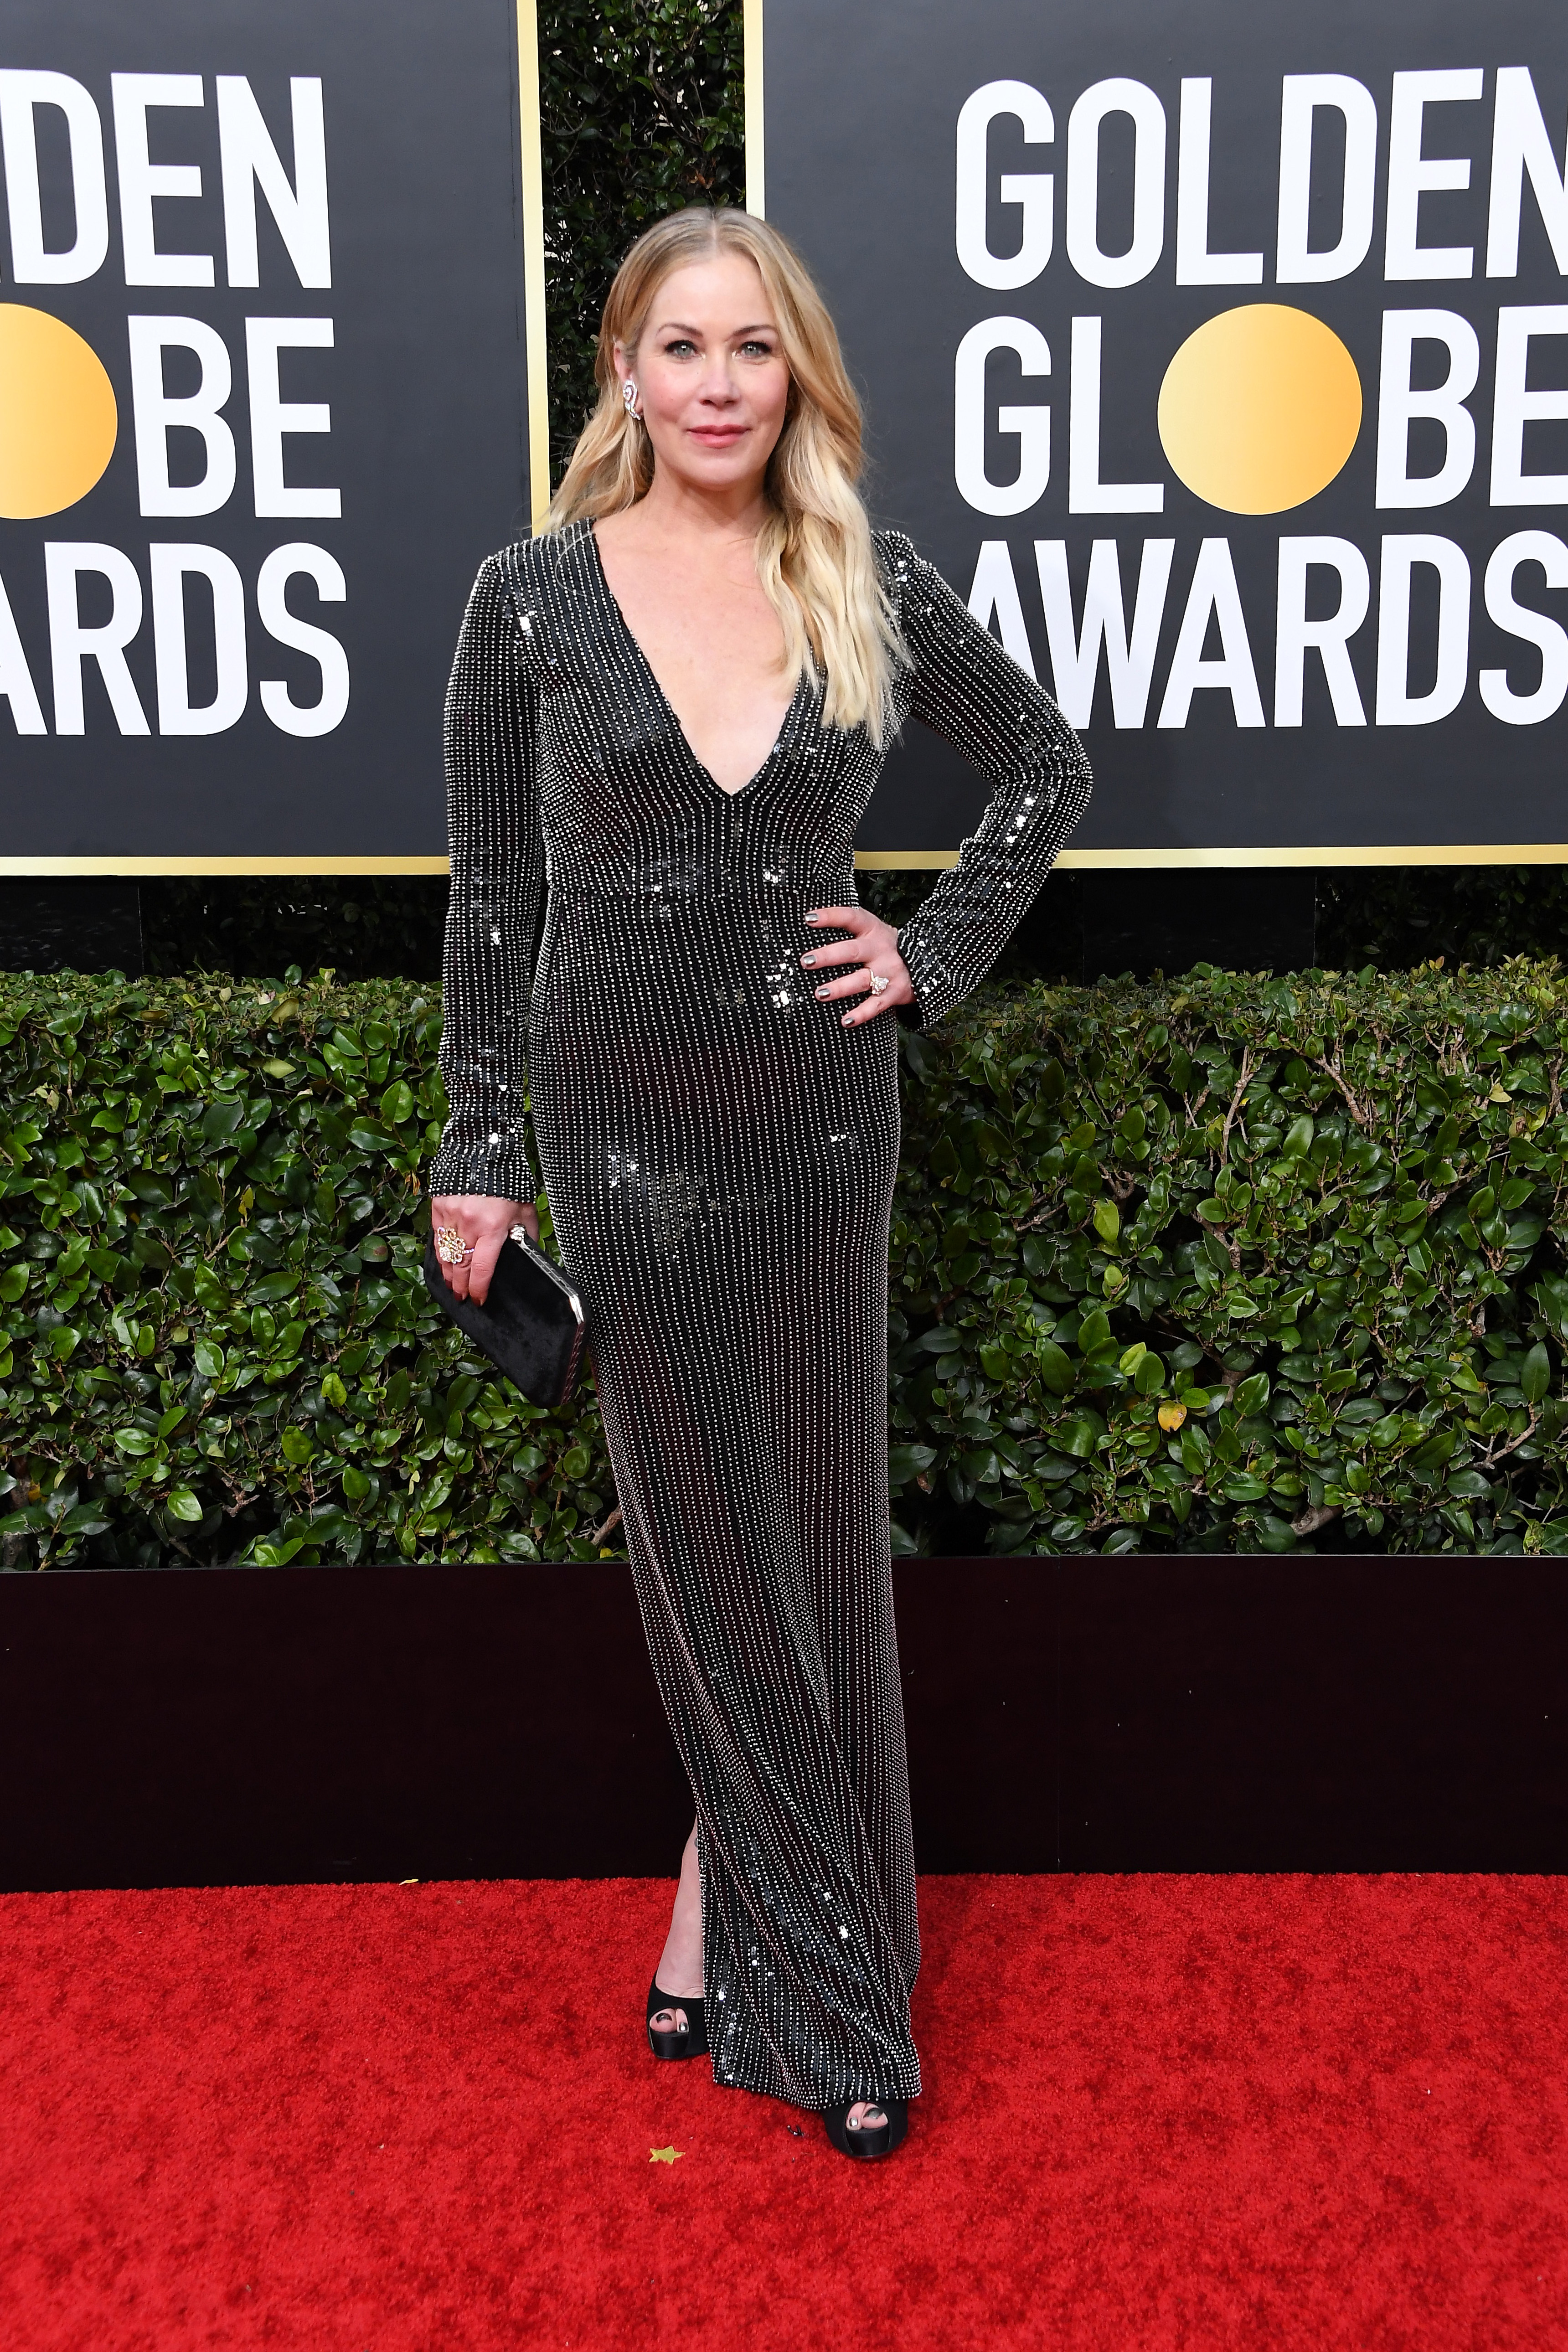 BEVERLY HILLS, CALIFORNIA - JANUARY 05: Christina Applegate attends the 77th Annual Golden Globe Awards at The Beverly Hilton Hotel on January 05, 2020 in Beverly Hills, California. (Photo by Steve Granitz/WireImage)